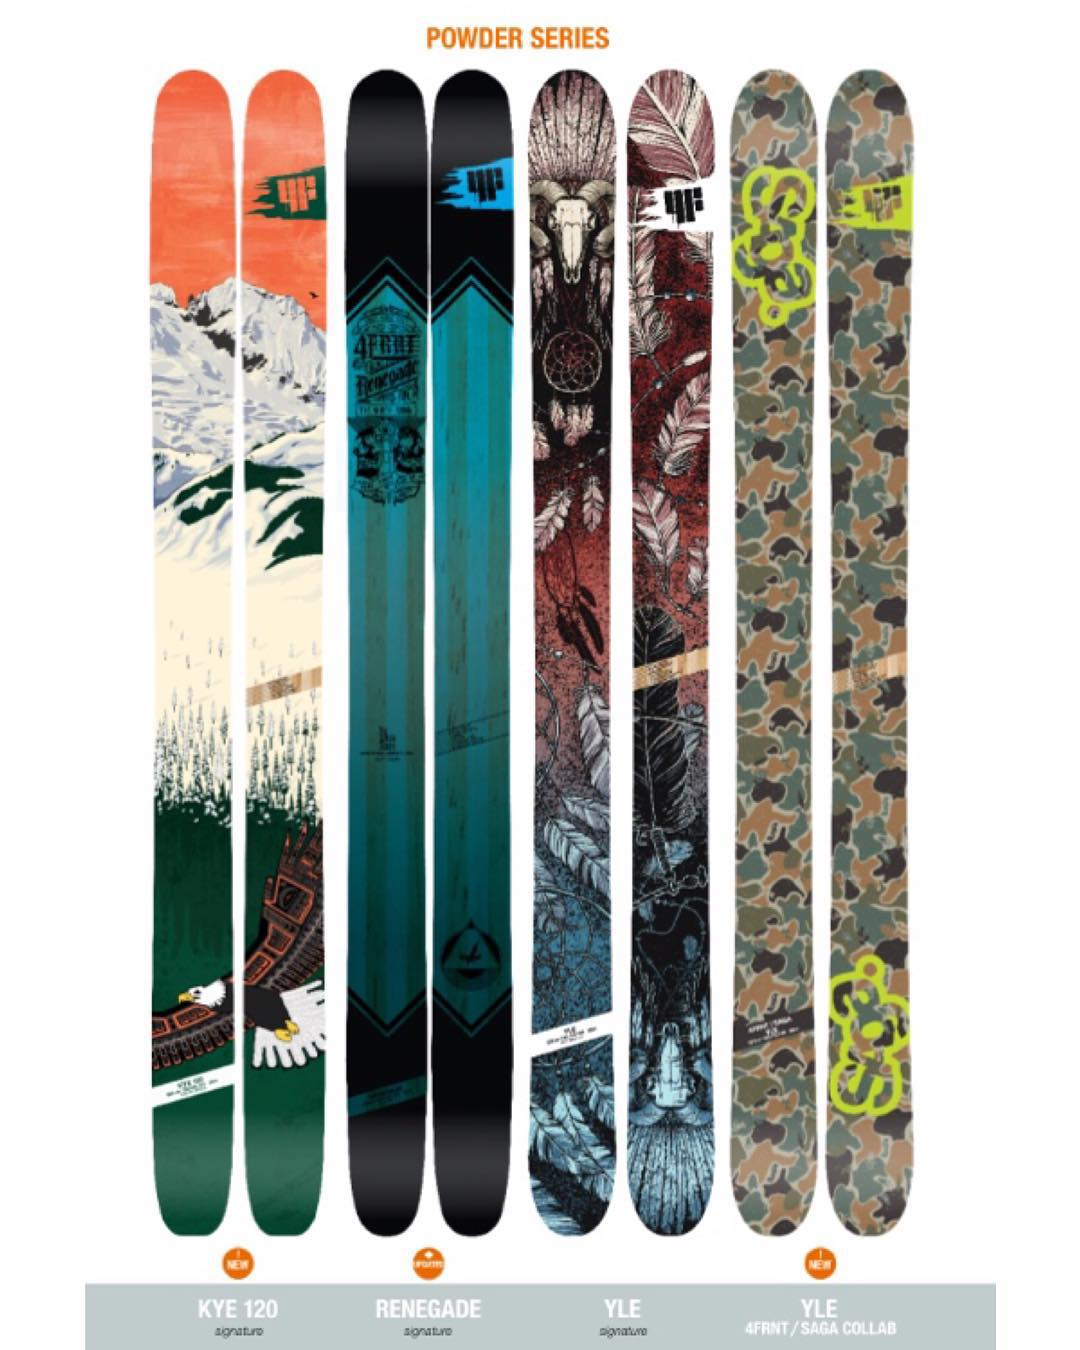 These cooler days got us thinking about deep blower pow days. Here's our deep snow collection. The all new Kye 120, our most versatile hard charger that's playful enough to spin threes mid pillow line. Updated Renegade with Vibeveil and ABS sidewalls....